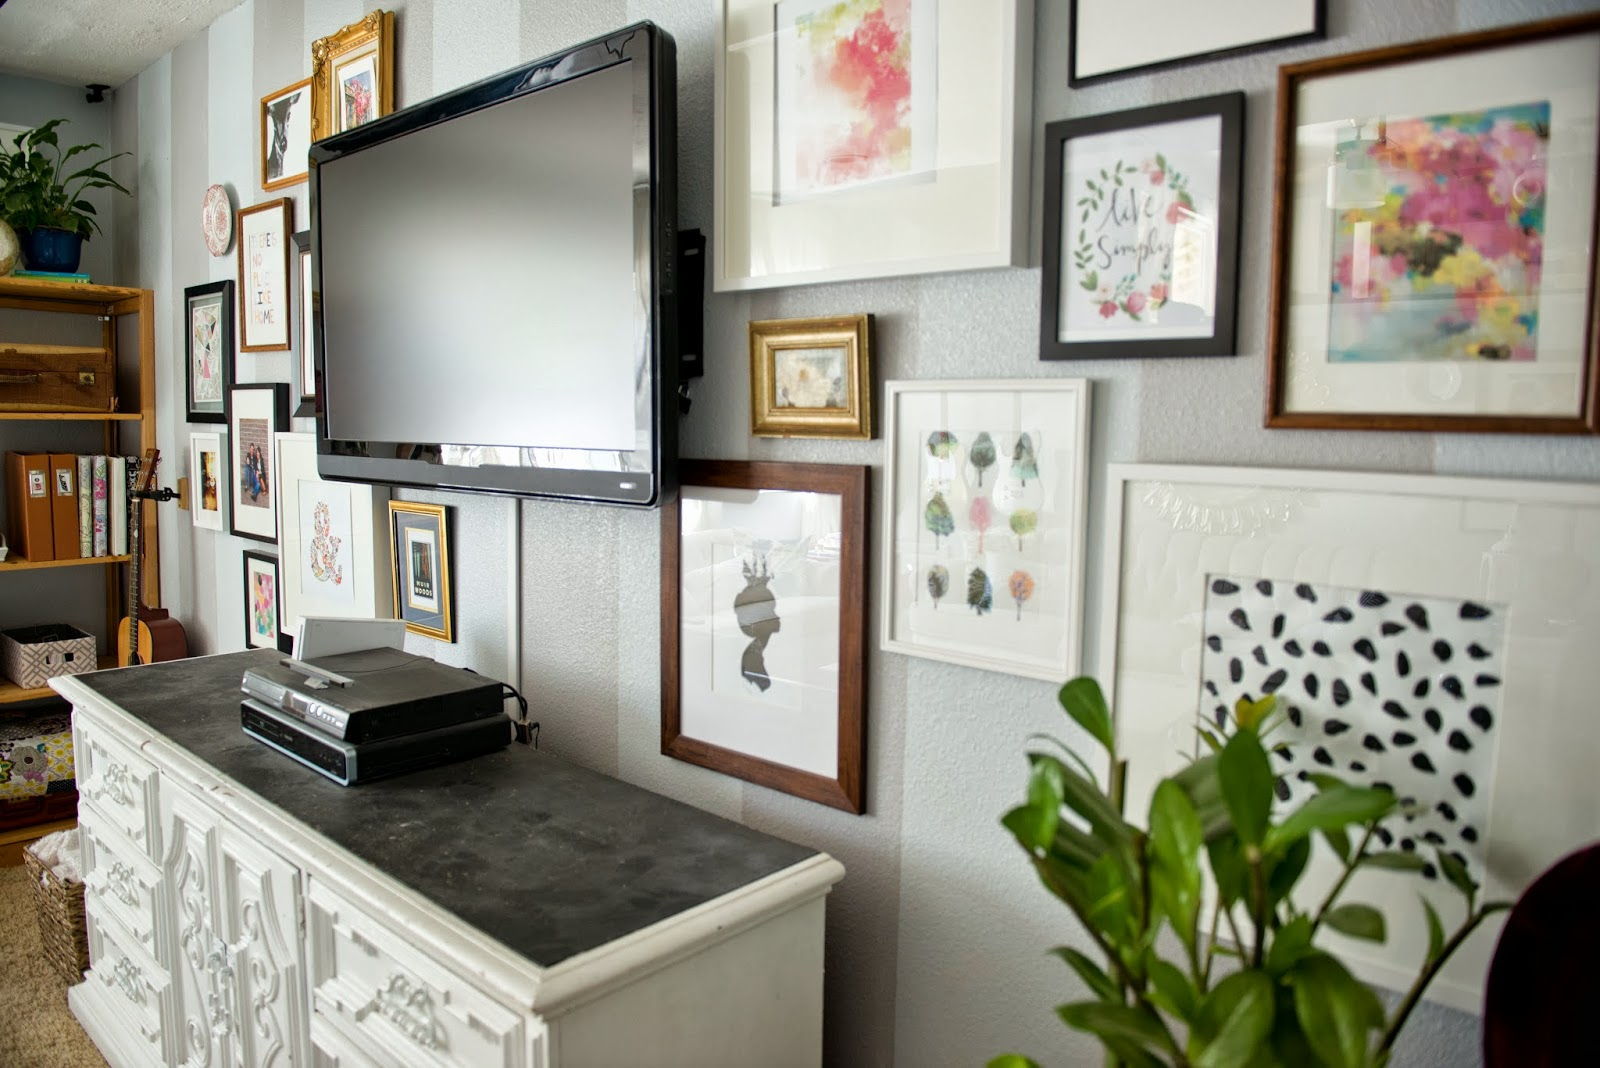 Decor Around TV :Helpful Tips To Make A Statement In Your Living Room